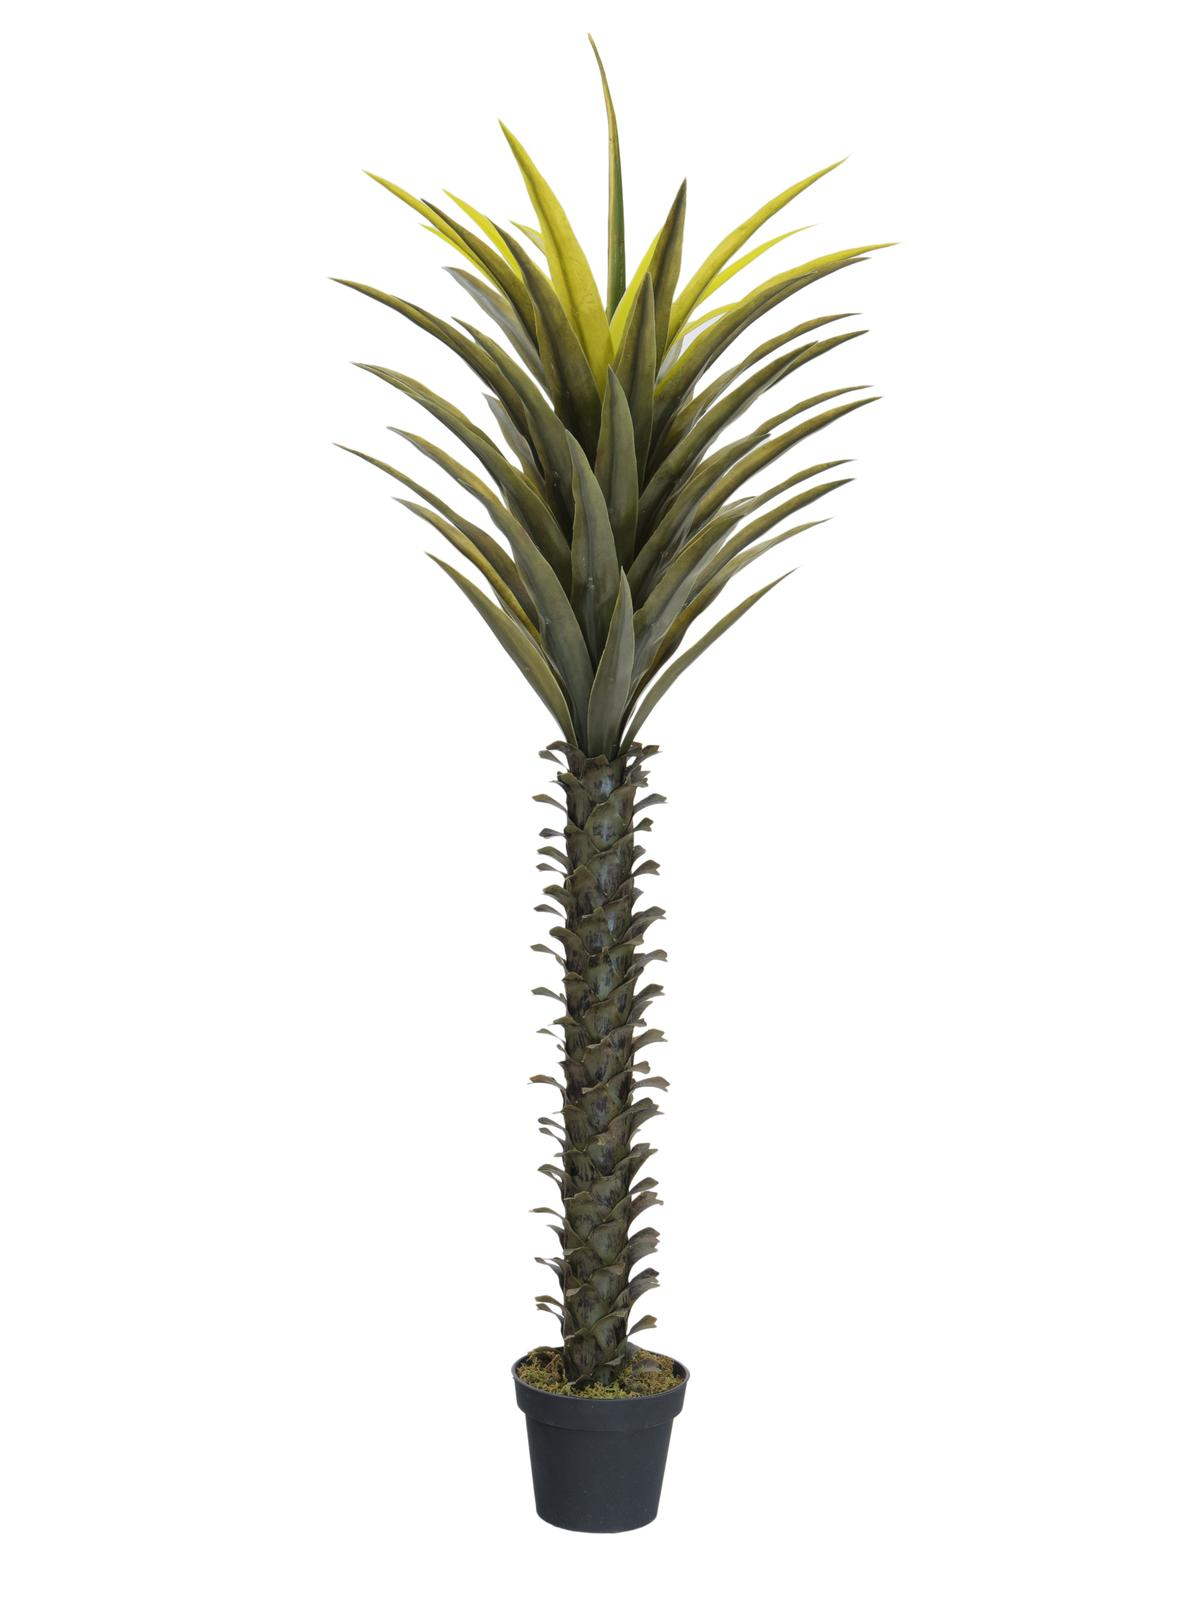 EUROPALMS pianta artificialeYu